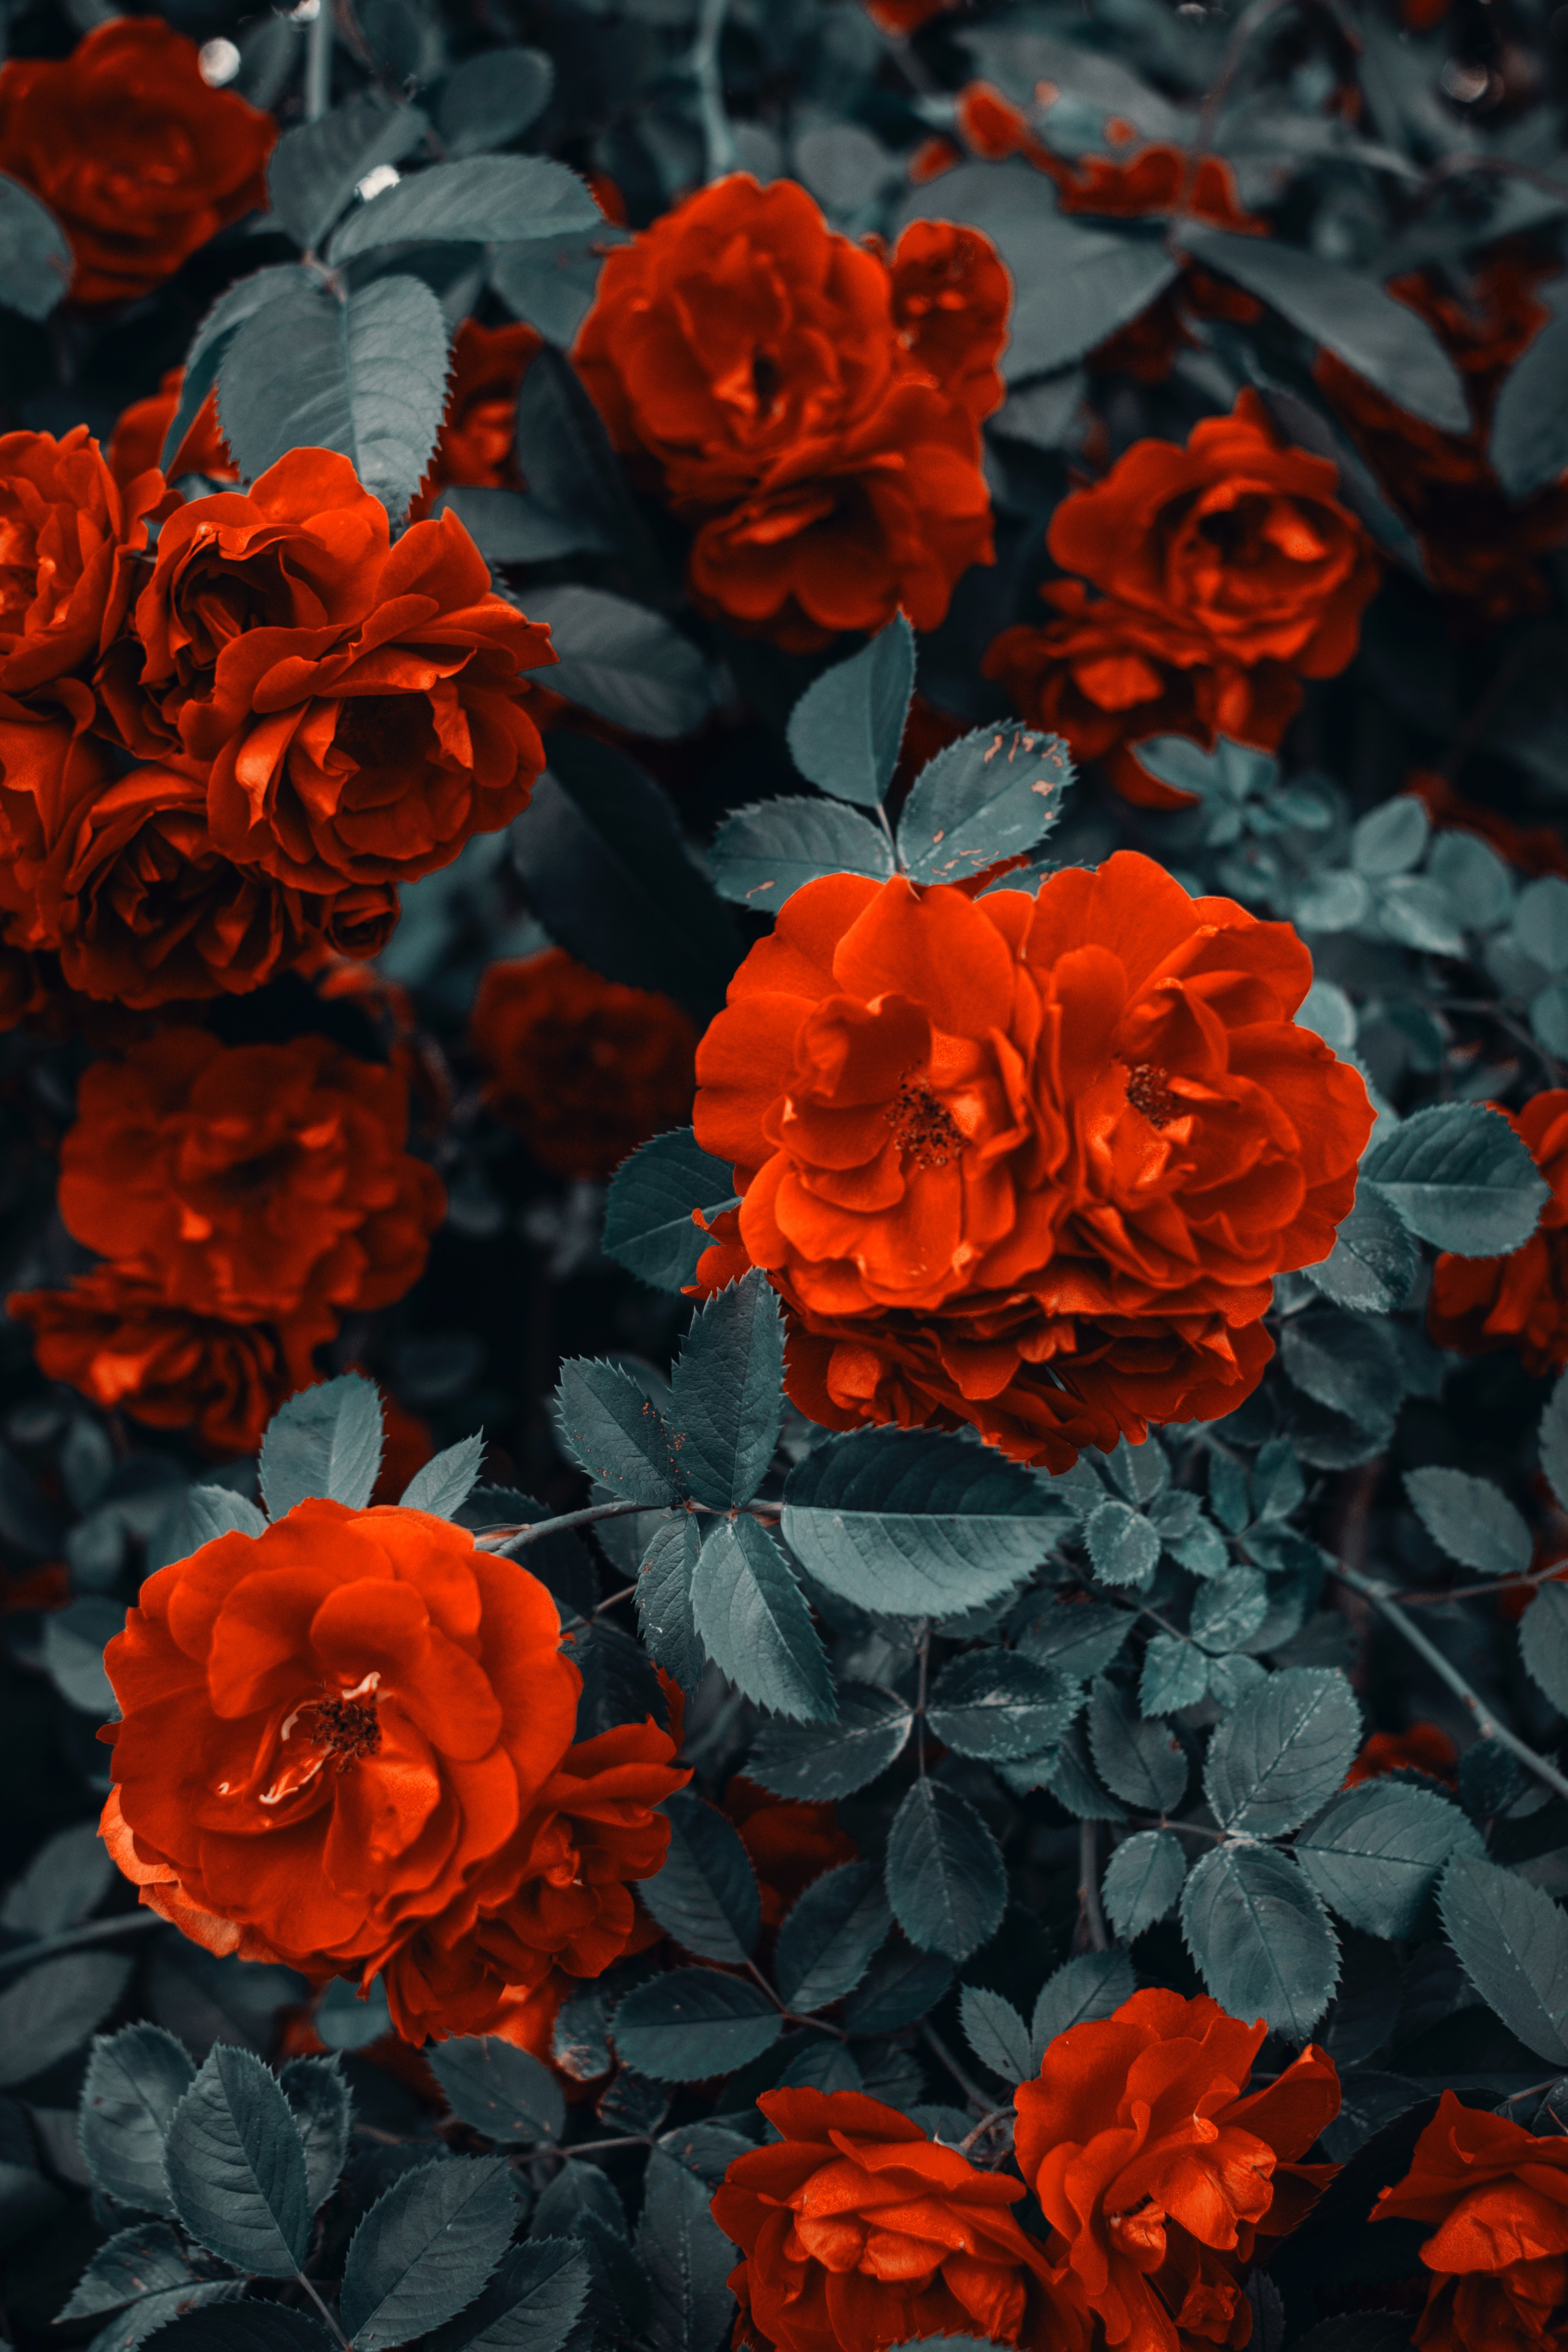 142899 download wallpaper Flowers, Roses, Bush, Buds screensavers and pictures for free